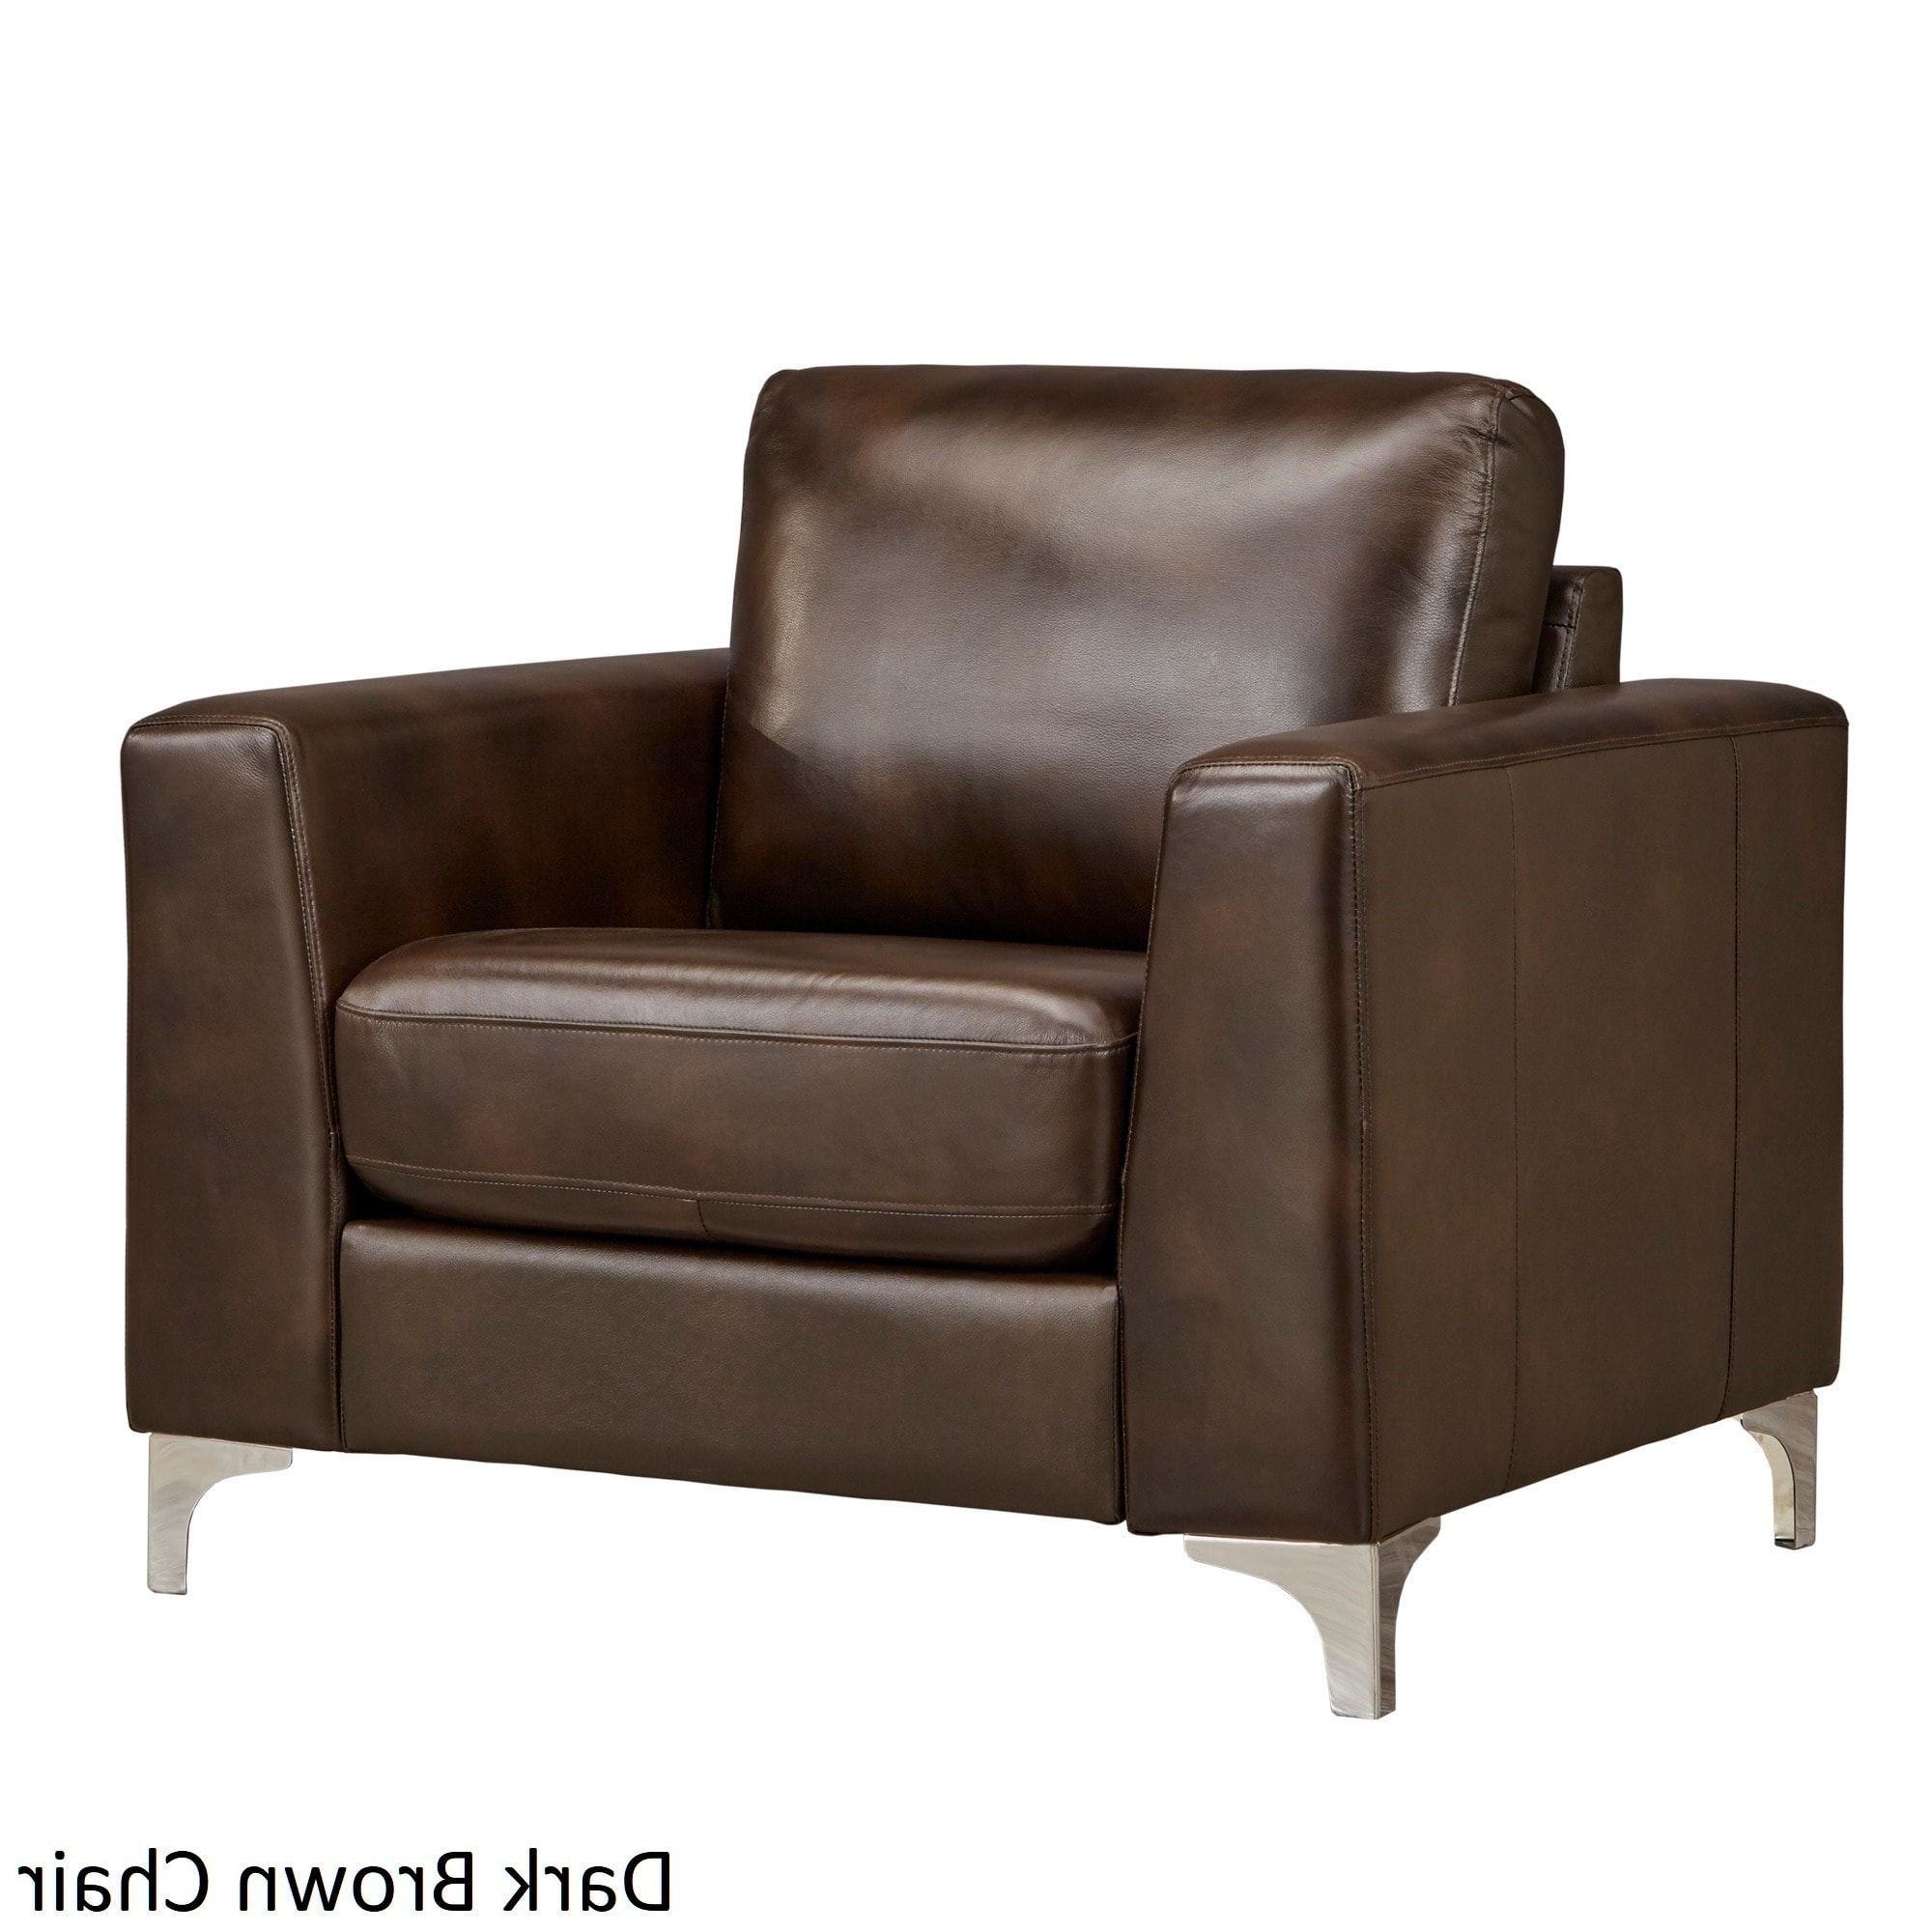 Most Current Aniline Leather Sofas Intended For Bastian Aniline Leather Sofainspire Q Modern – Free Shipping (View 12 of 15)